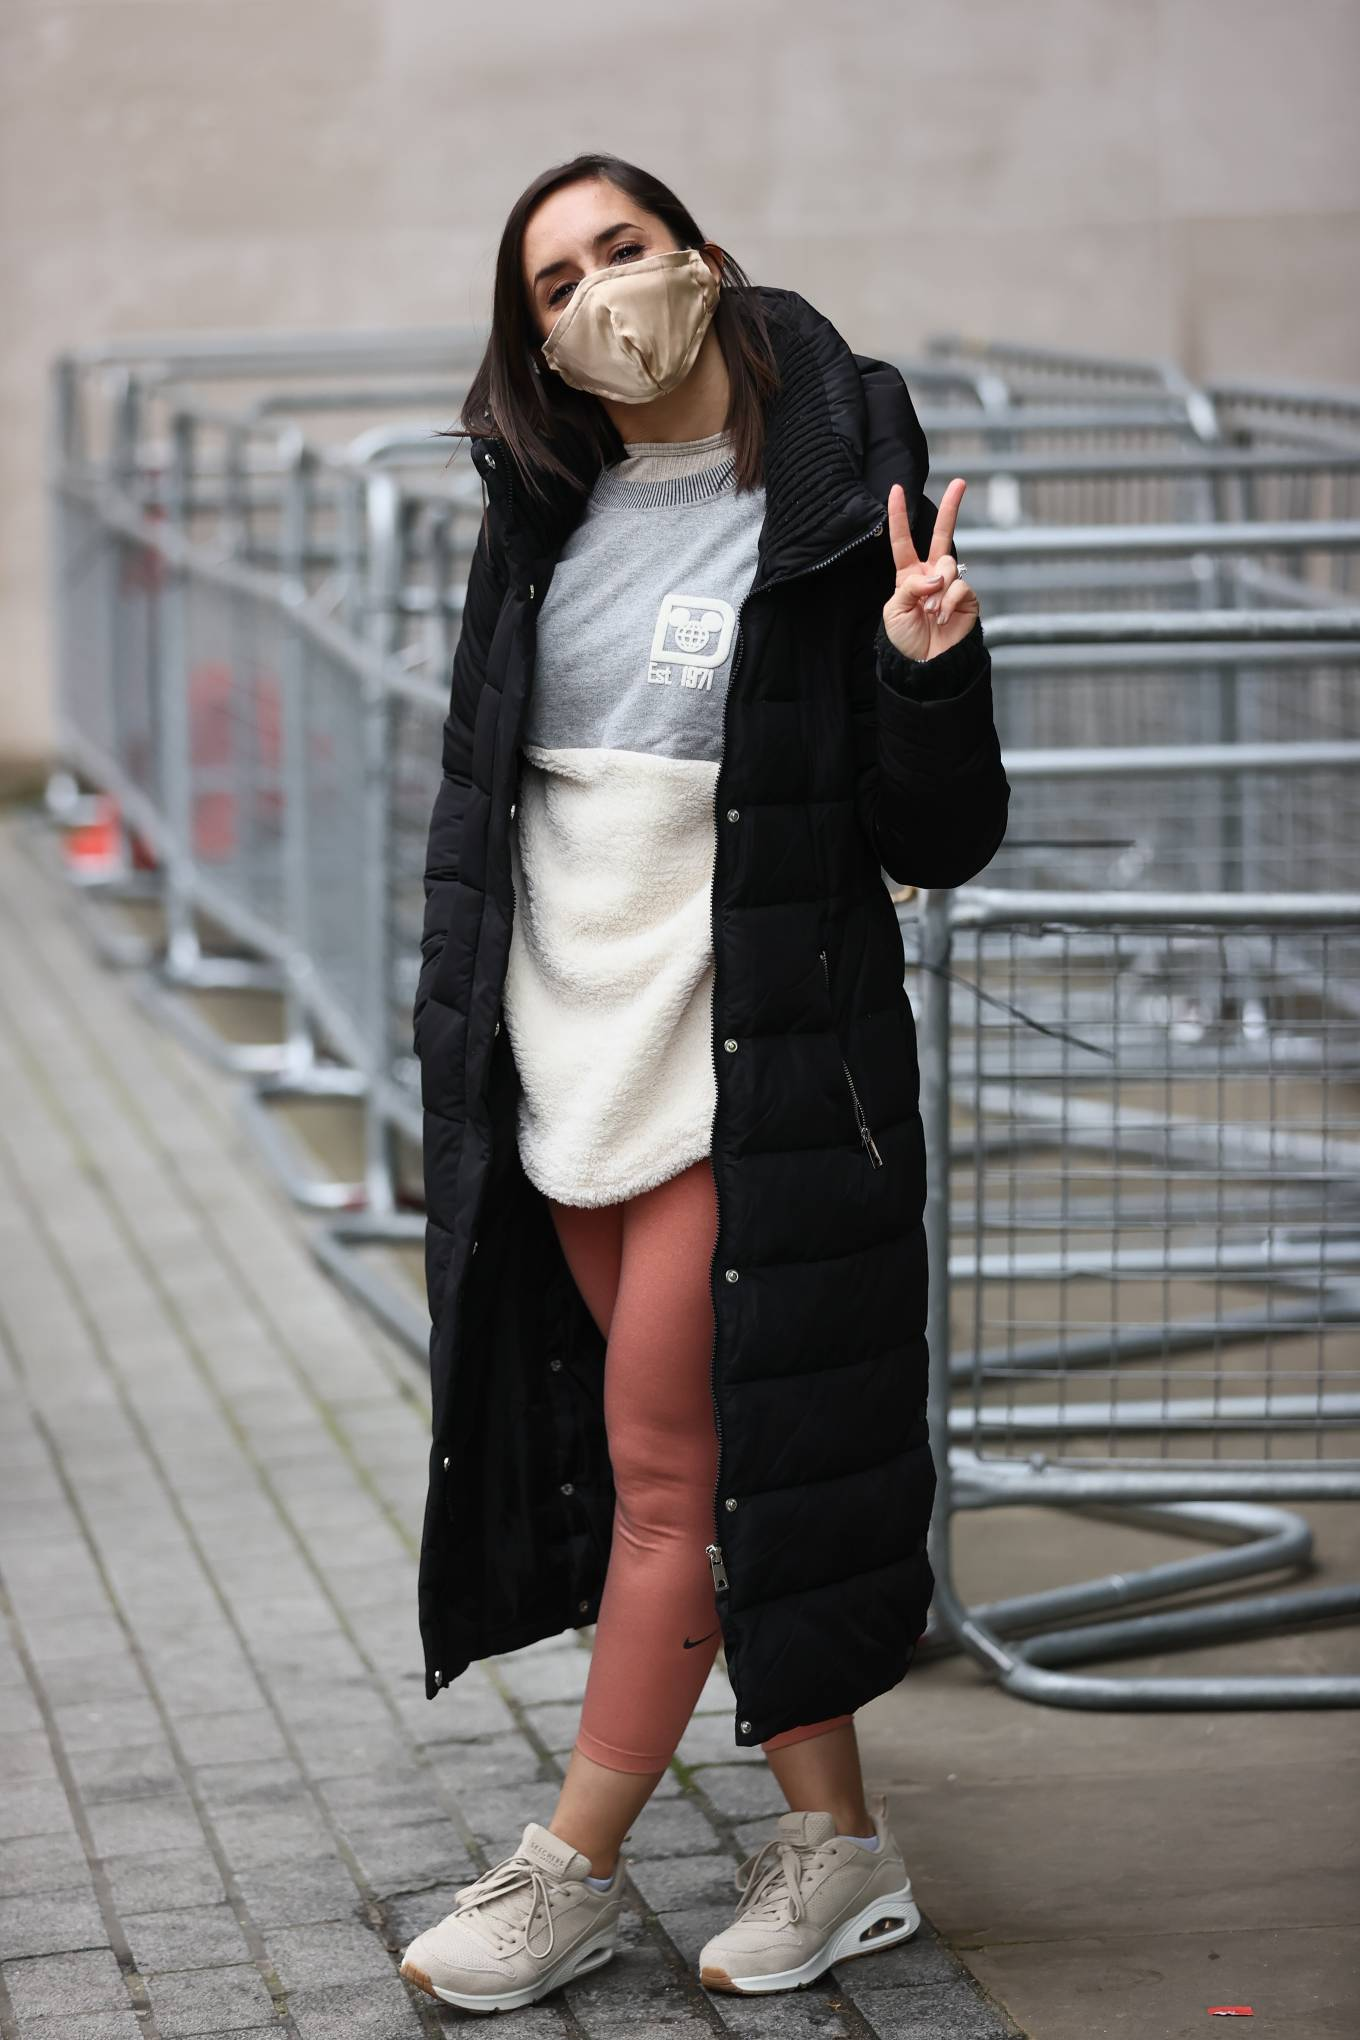 Janette Manrara - In pink leggings seen after BBC's Morning Live TV show in London